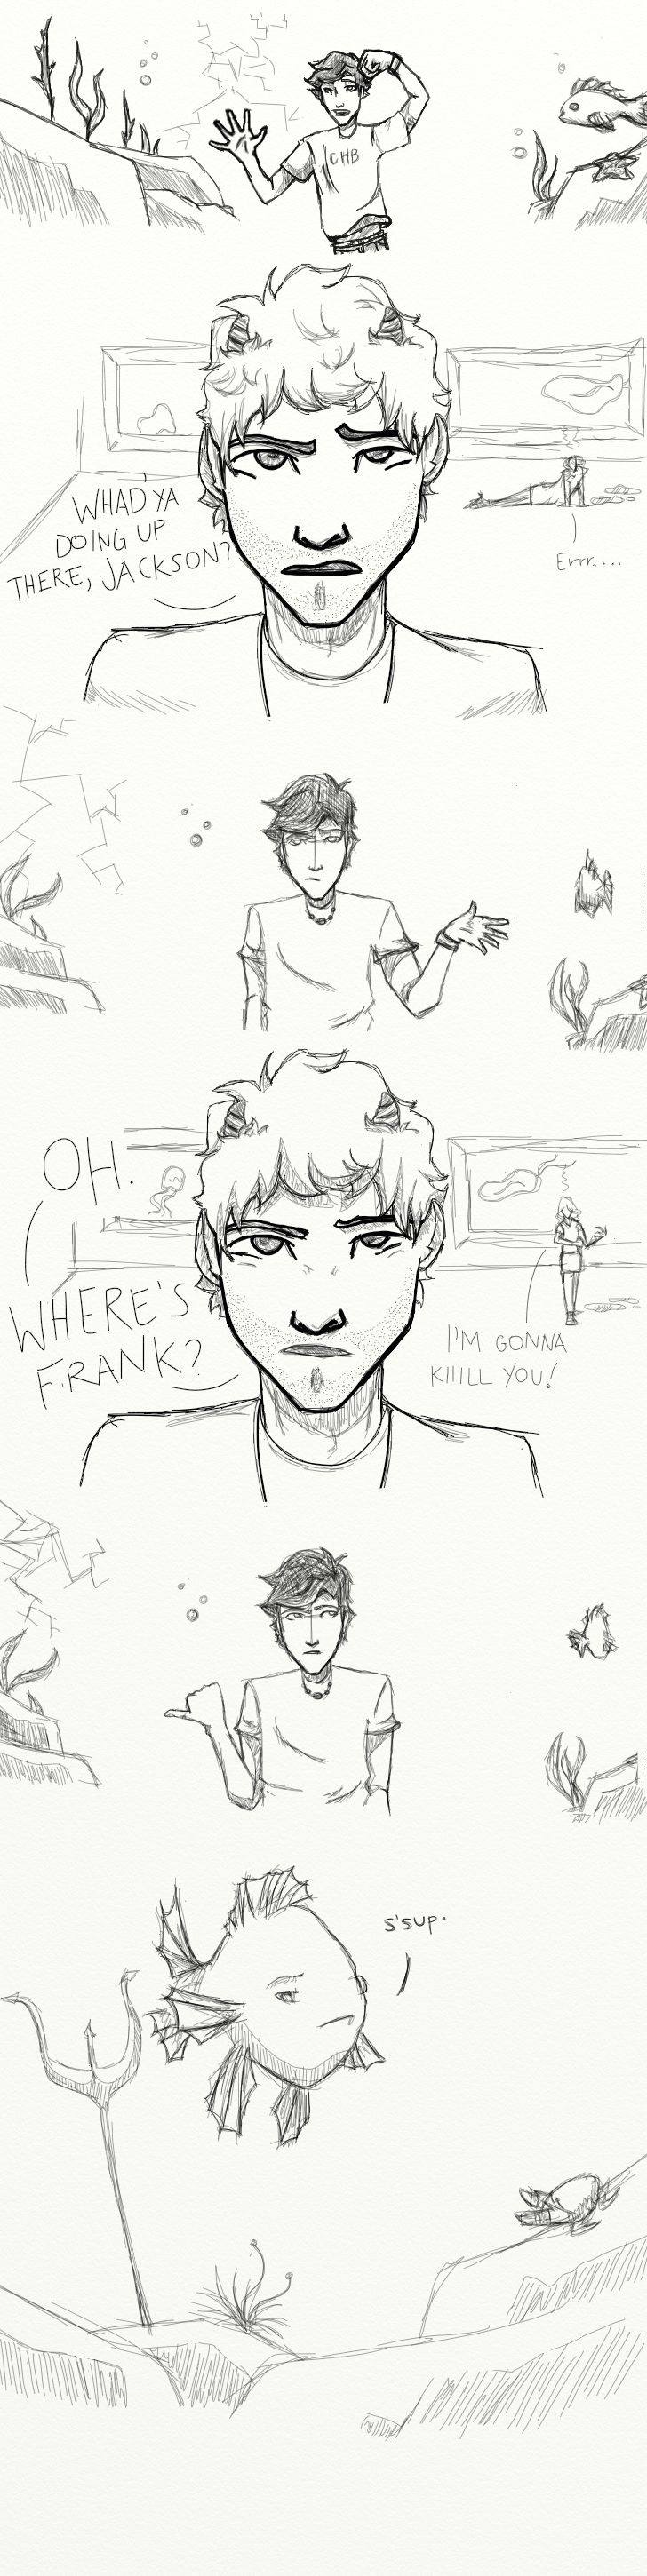 Where's Frank? by ~TheOneWhoLovesToEat on deviantART - THAT IS **EXACTLY** HOW I PICTURED THIS.